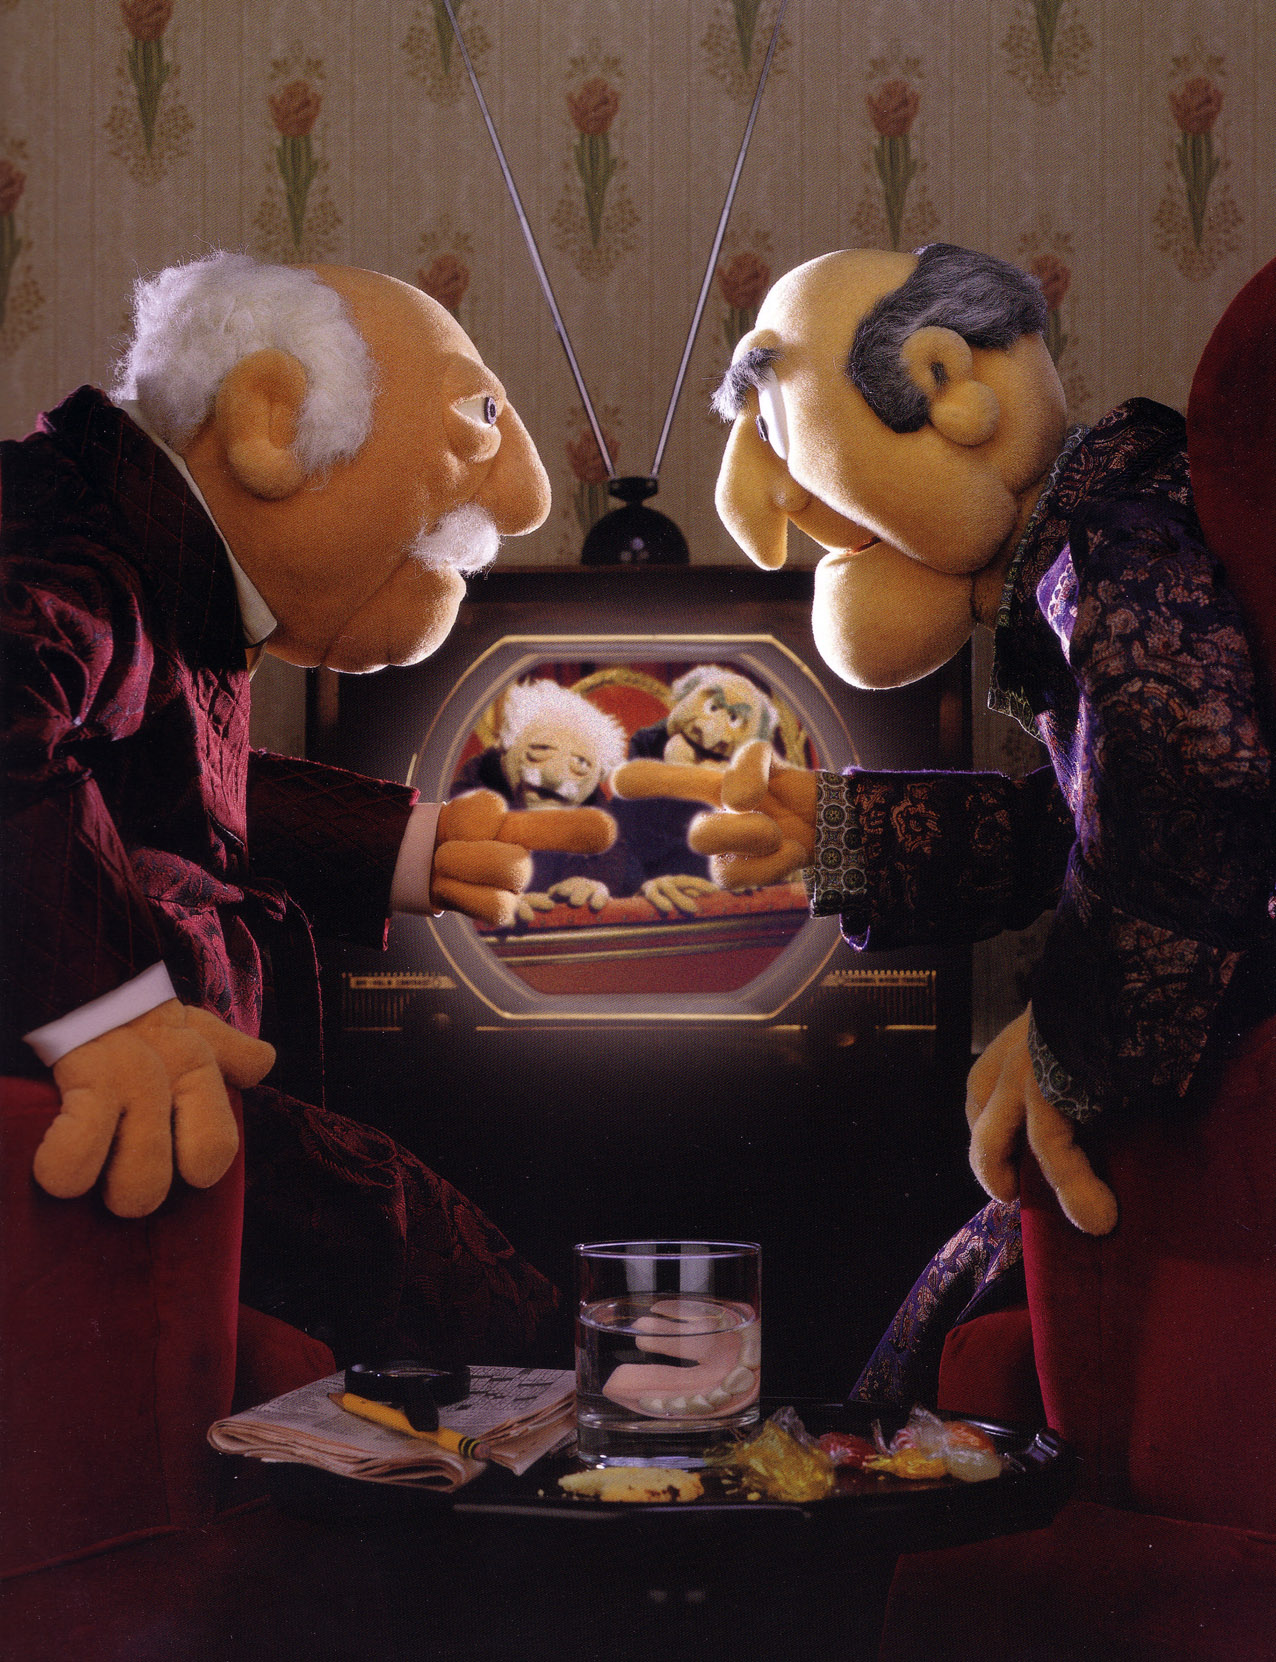 Build That Features Two Of The Best Muppets Statler And Waldorf You Know Those Old Guys Who Are Never Hy Always Heckling From Balcony